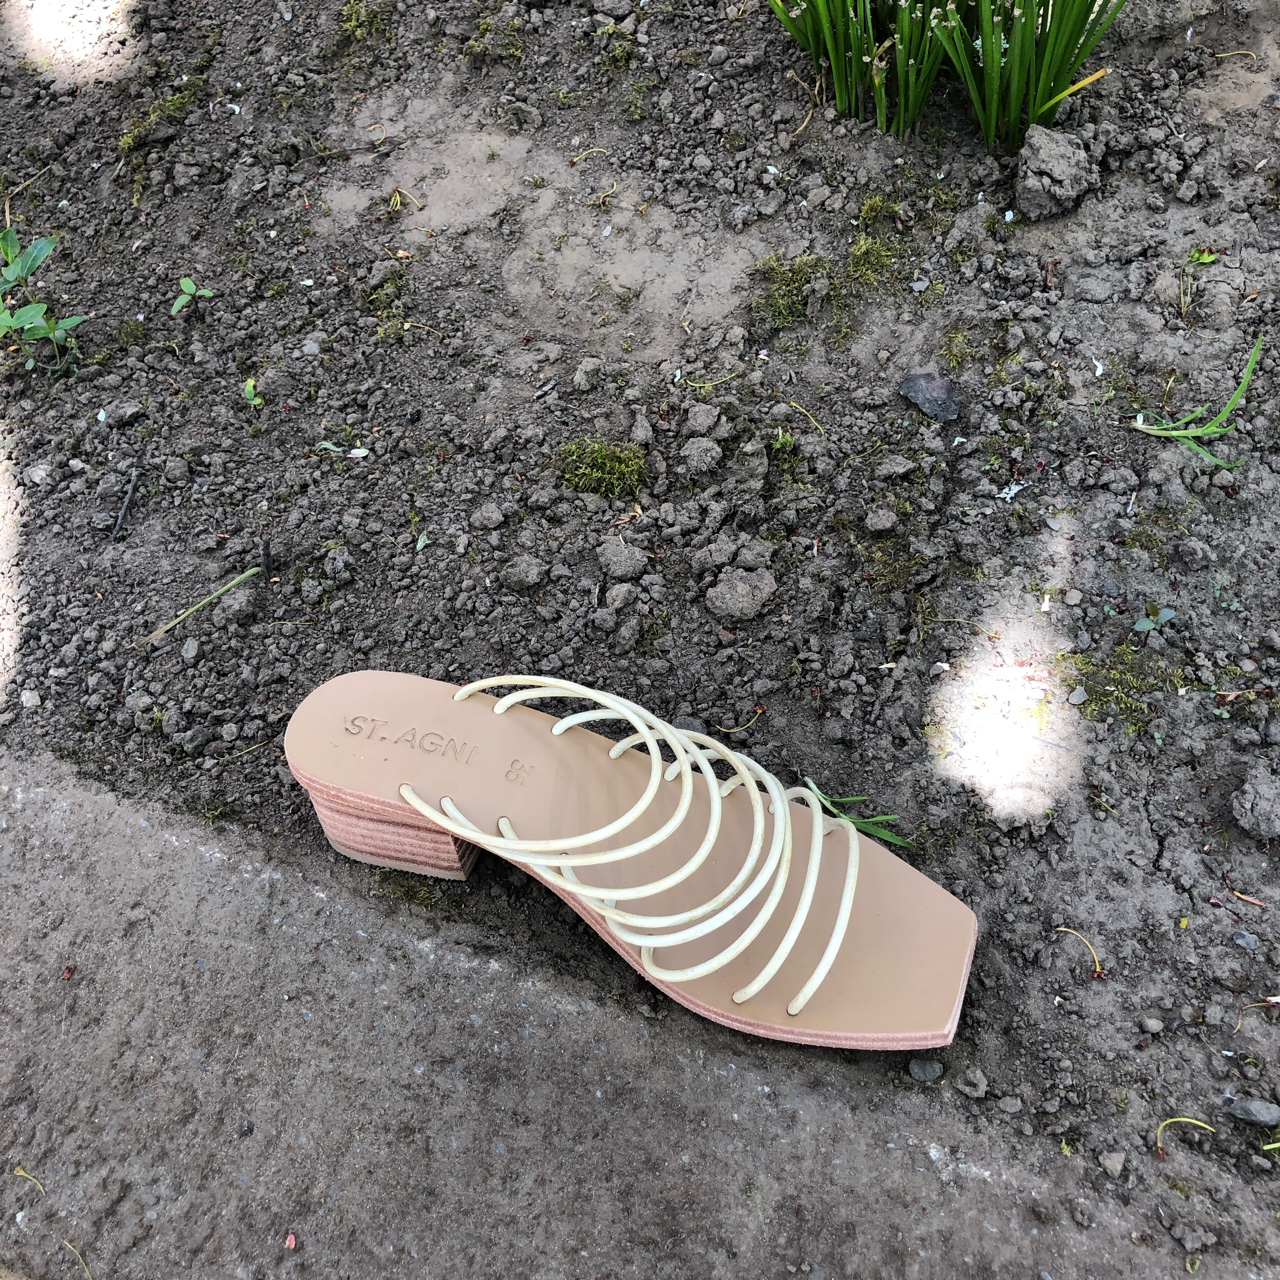 Product Image 1 - St Agni ines sandal in